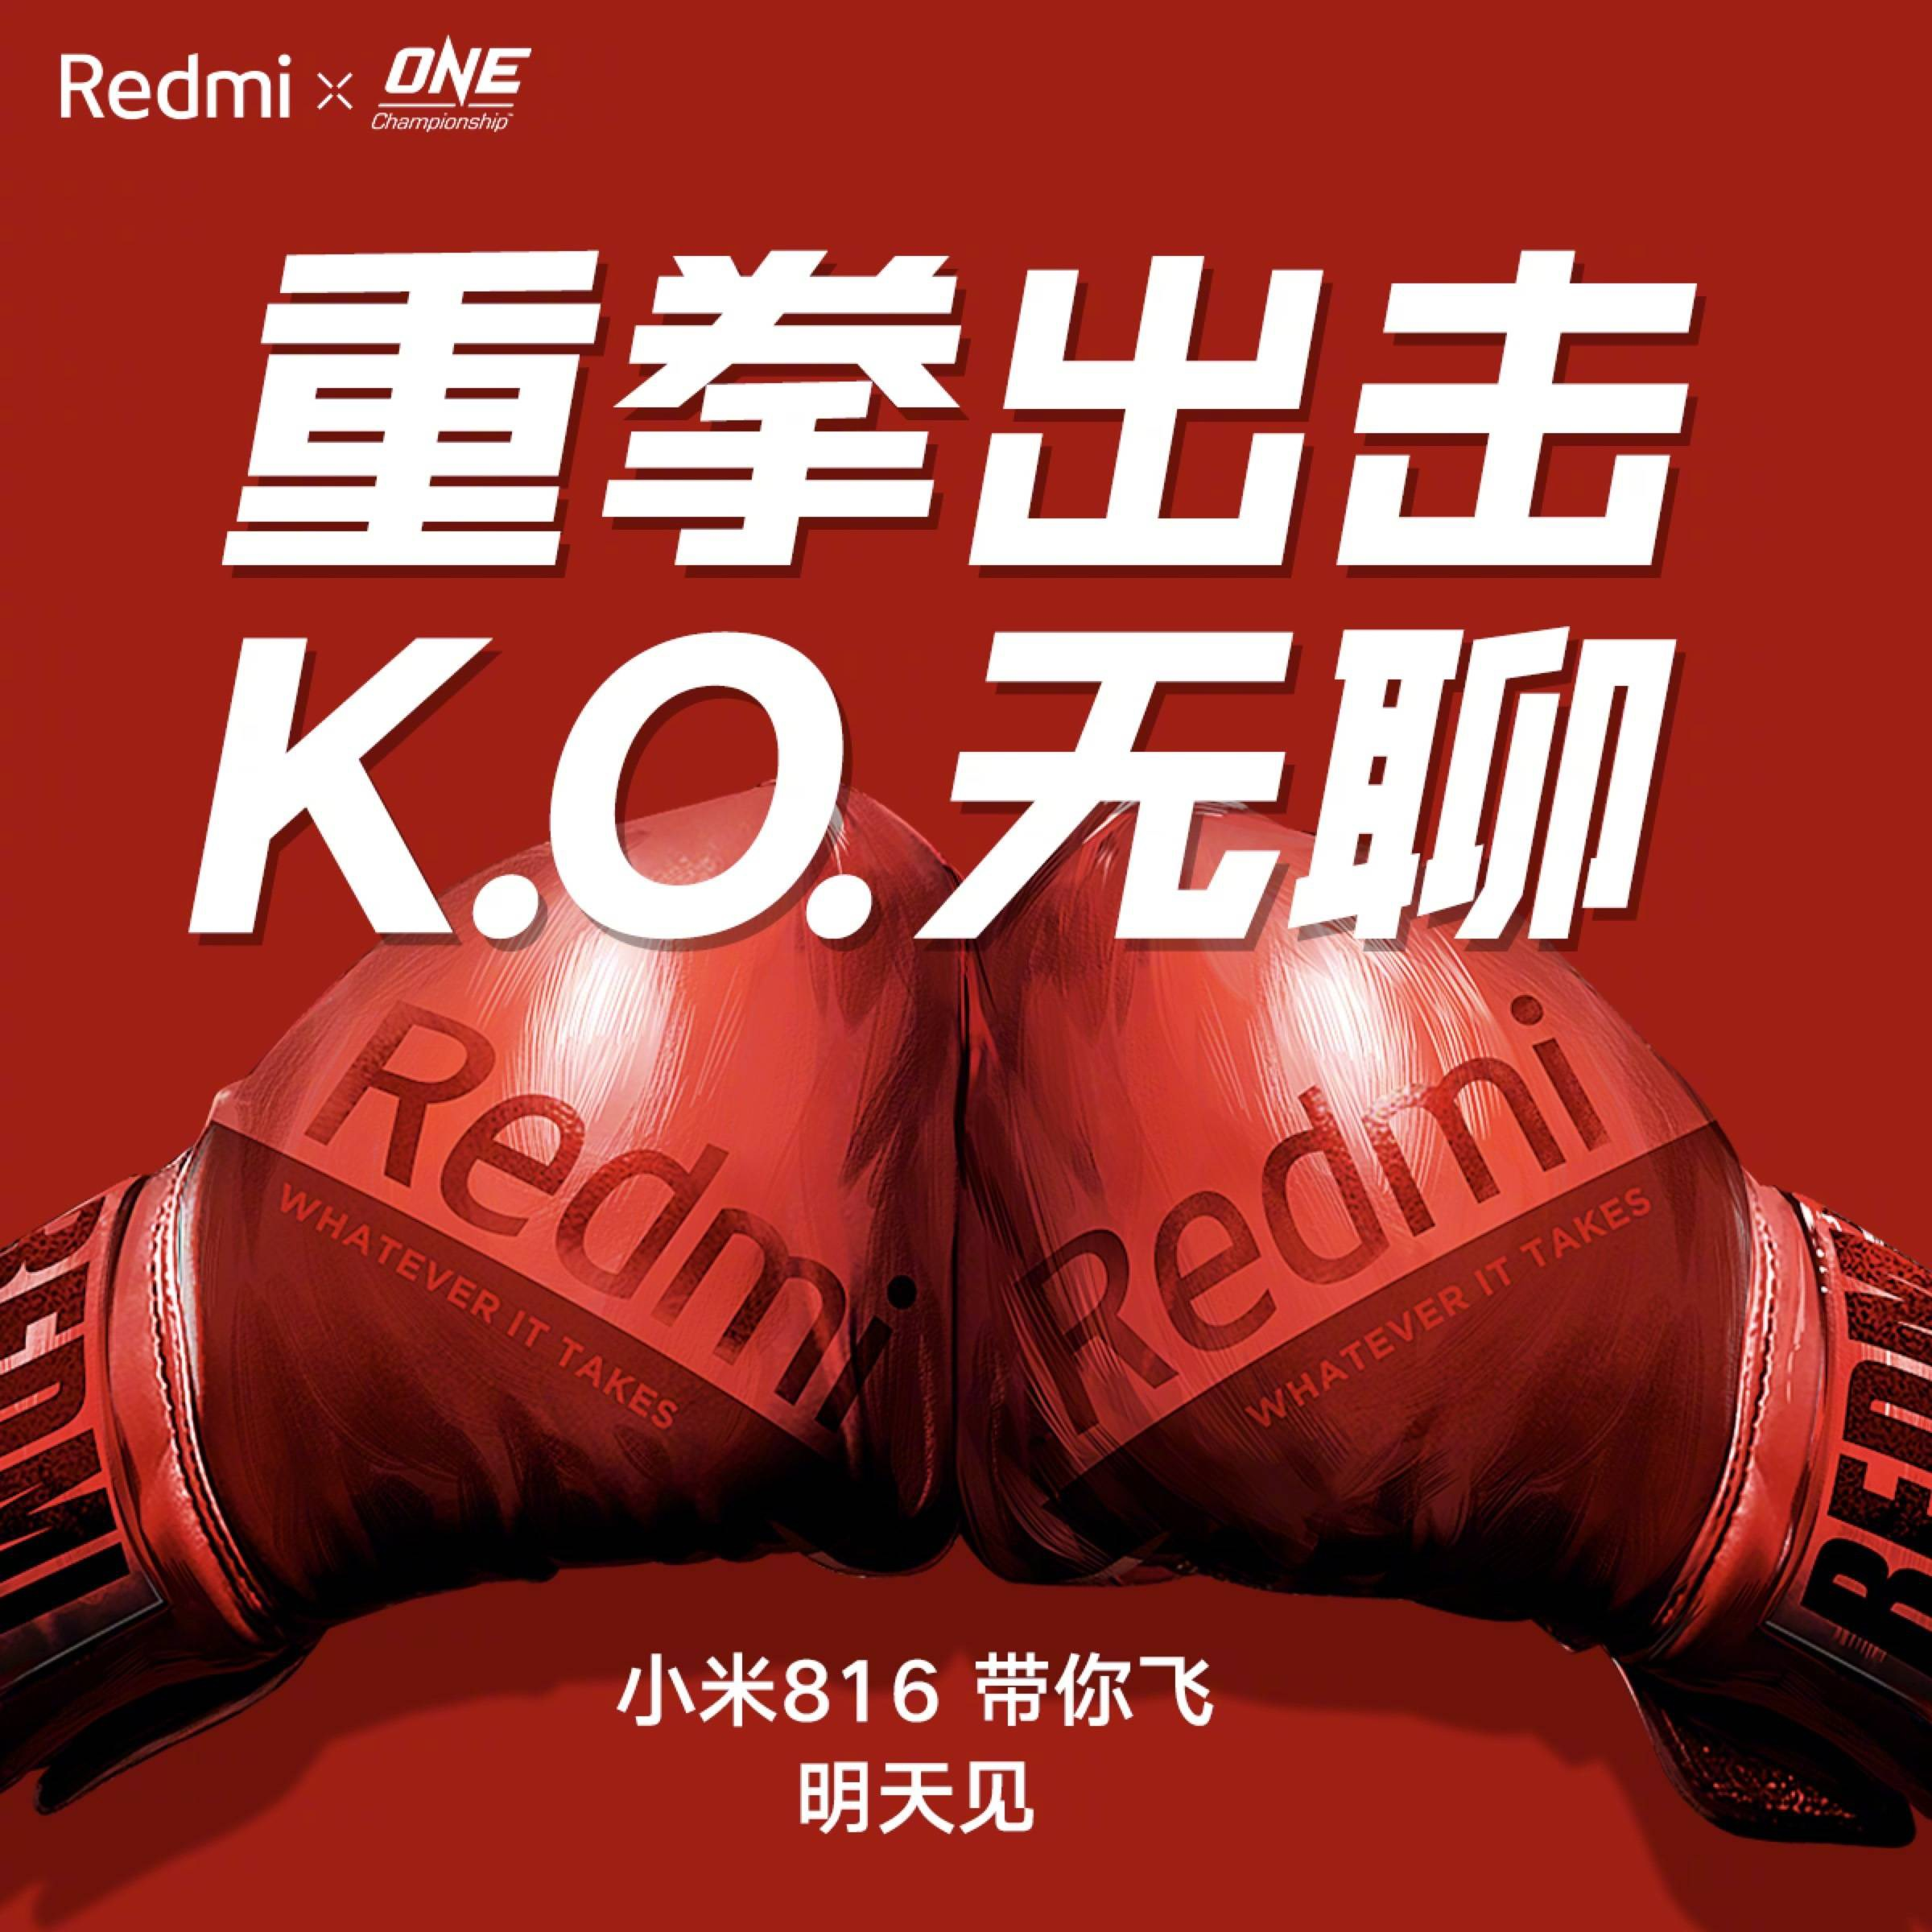 Redmi quotes us this August 16. A new variant of the Redmi K20 Pro with 5G and 12GB of RAM could be on the way